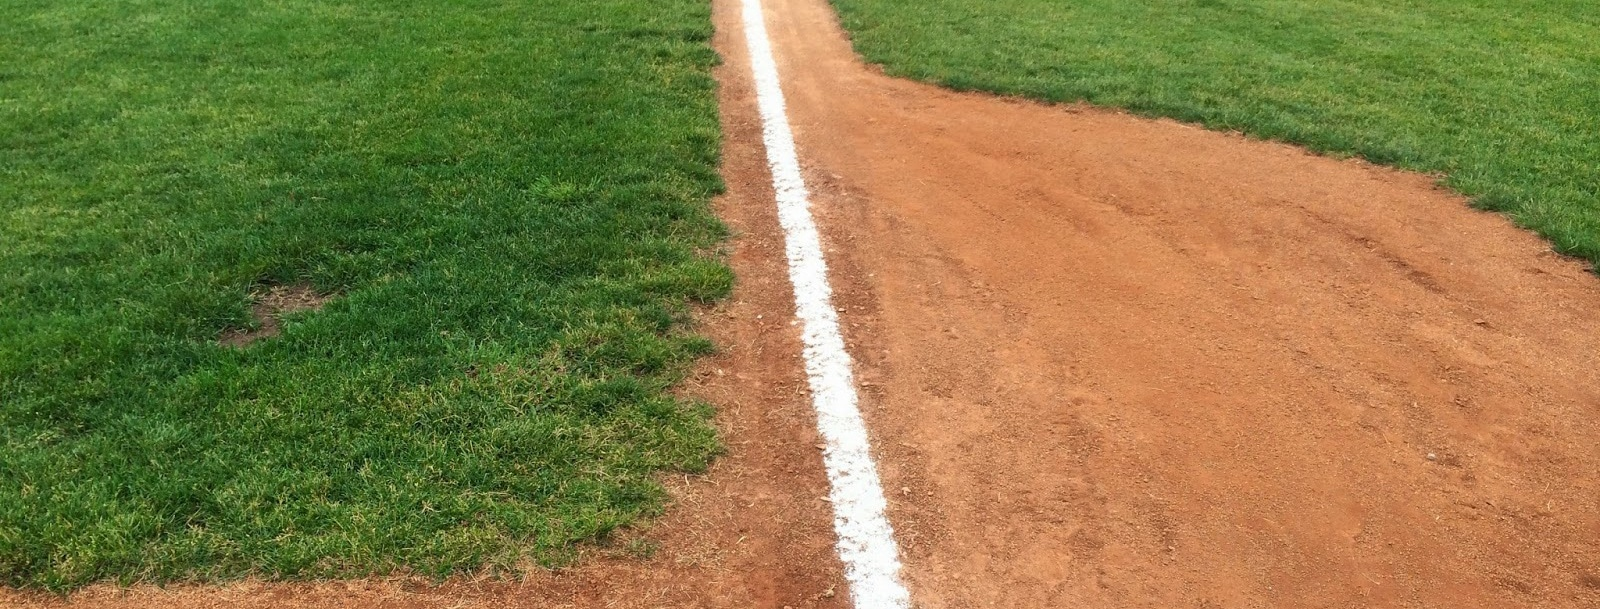 Baseline on Baseball Field